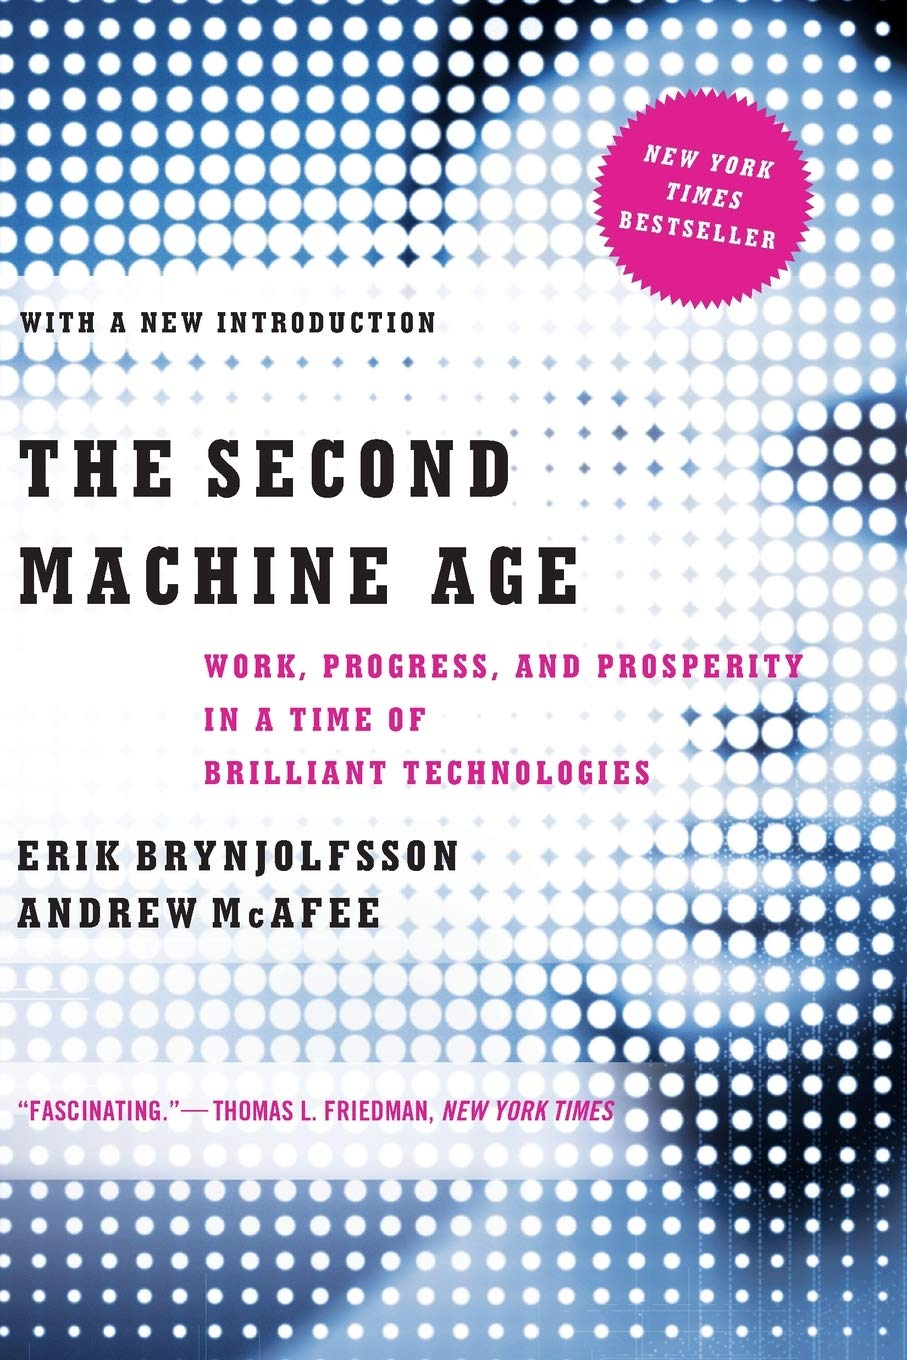 Image OfThe Second Machine Age: Work, Progress, And Prosperity In A Time Of Brilliant Technologies